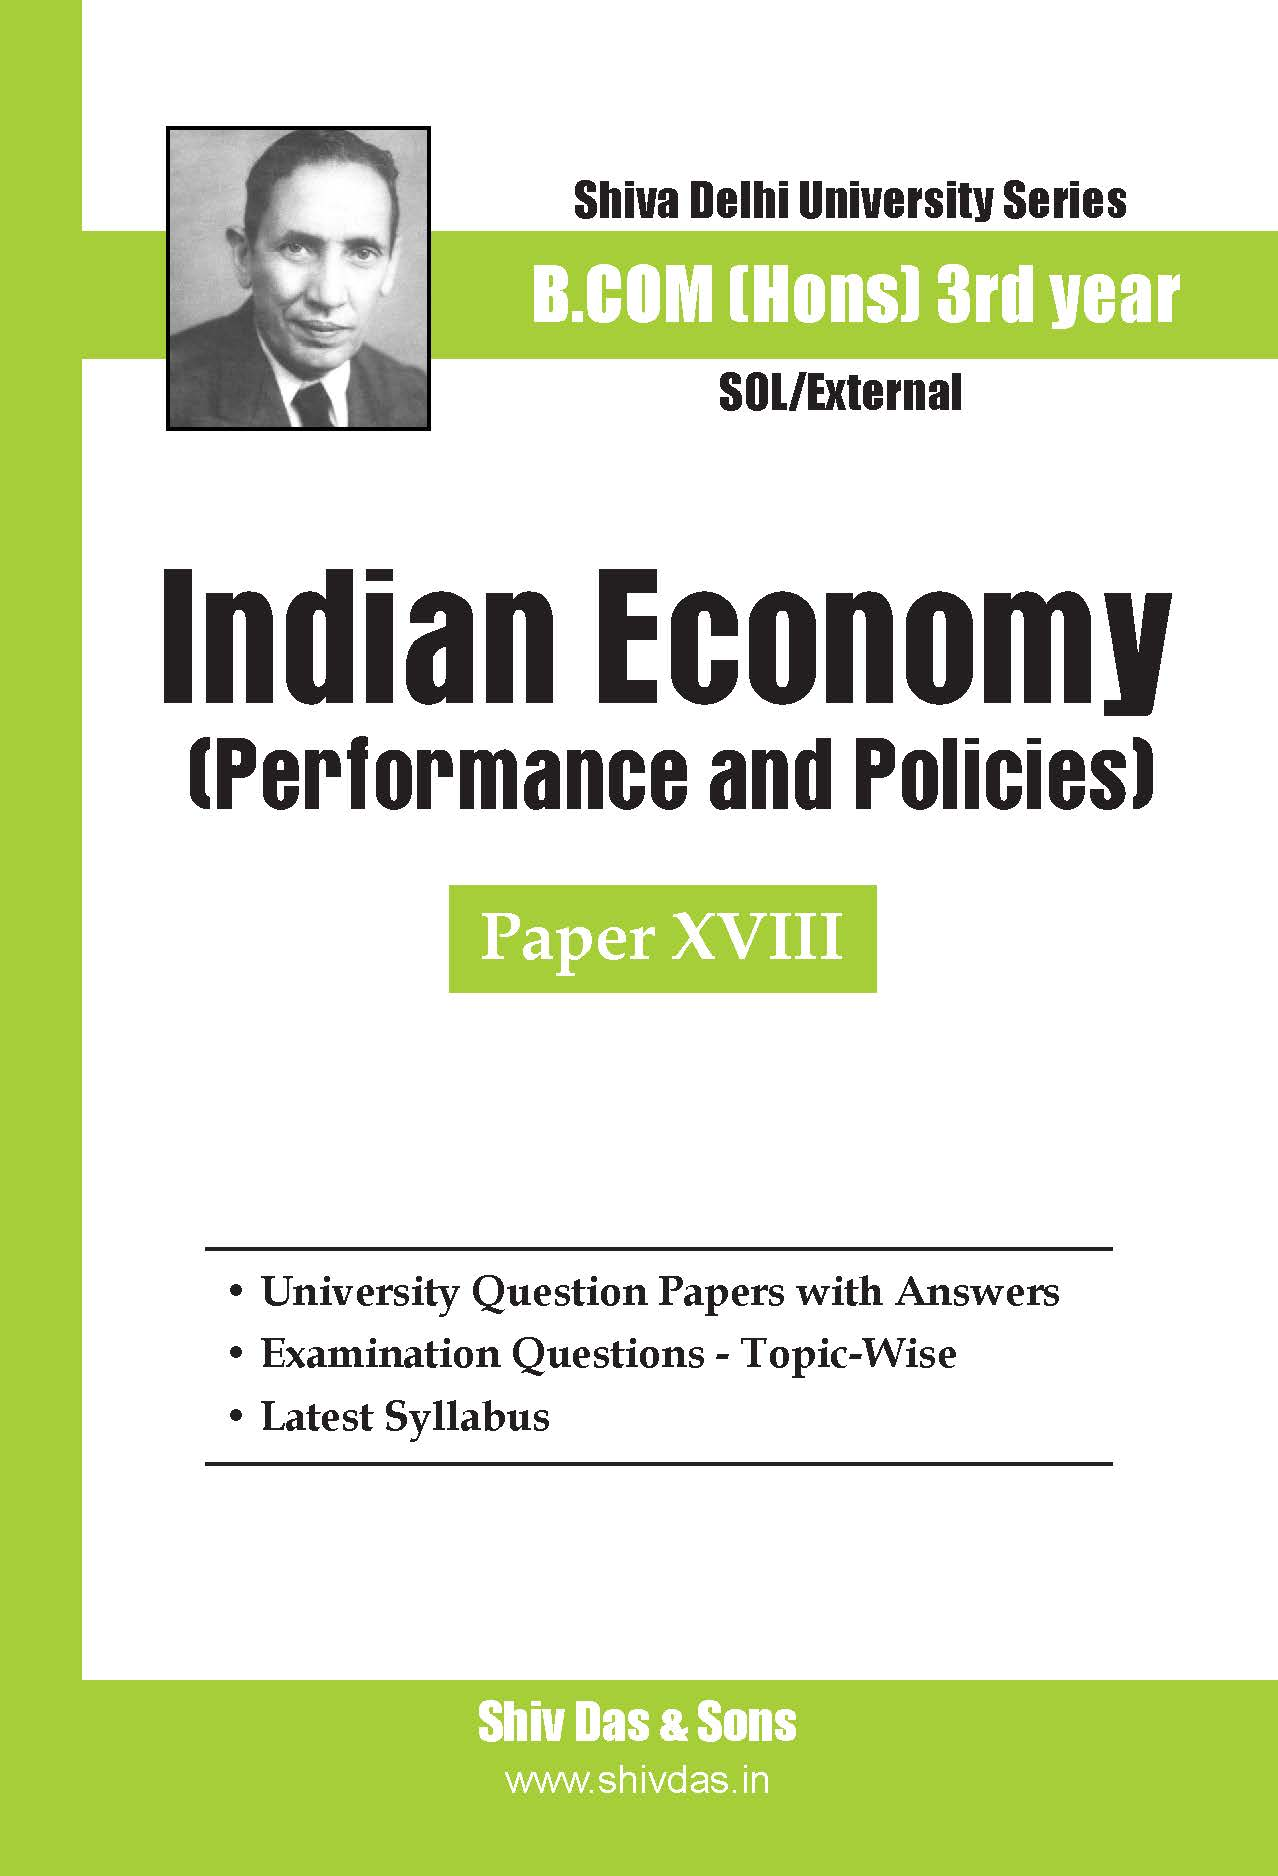 Indian Economy for B.Com Hons SOL/External 3rd Year